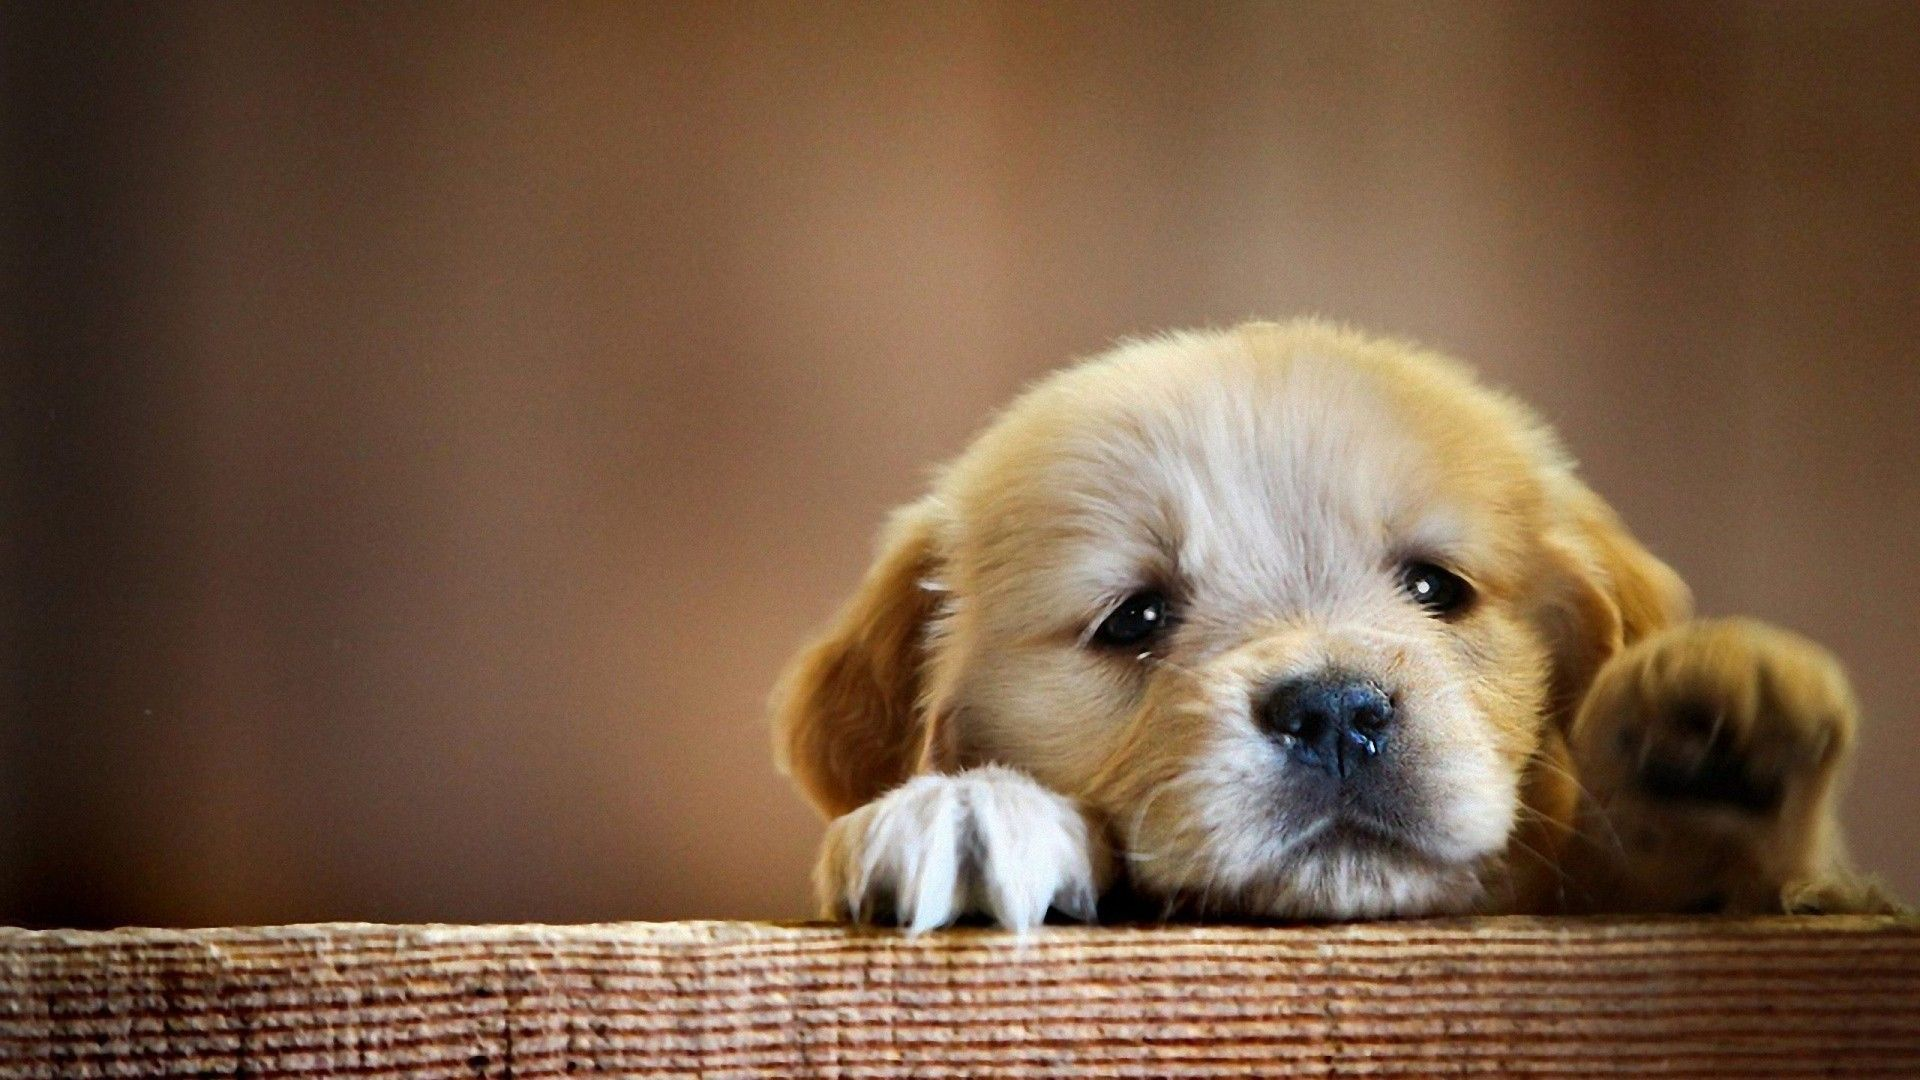 Cute Puppy Wallpapers   Top Cute Puppy Backgrounds 1920x1080